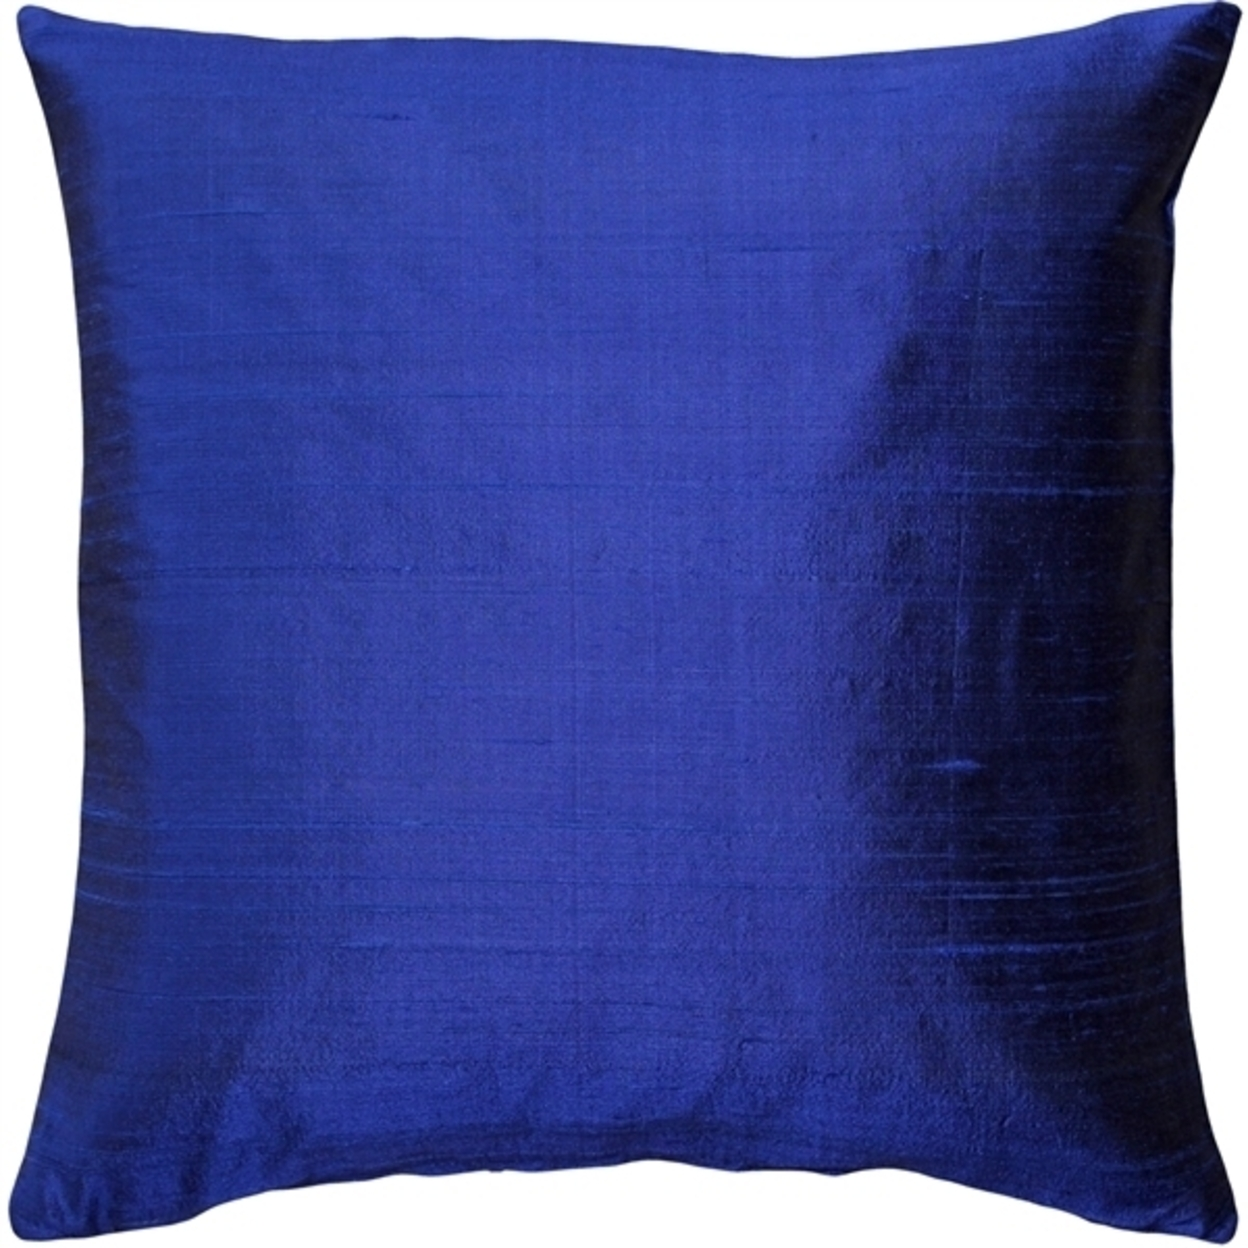 Pillow Decor - Sankara Ink Blue Silk Throw Pillow 18x18 56578f59a3771c8b498bcbc2